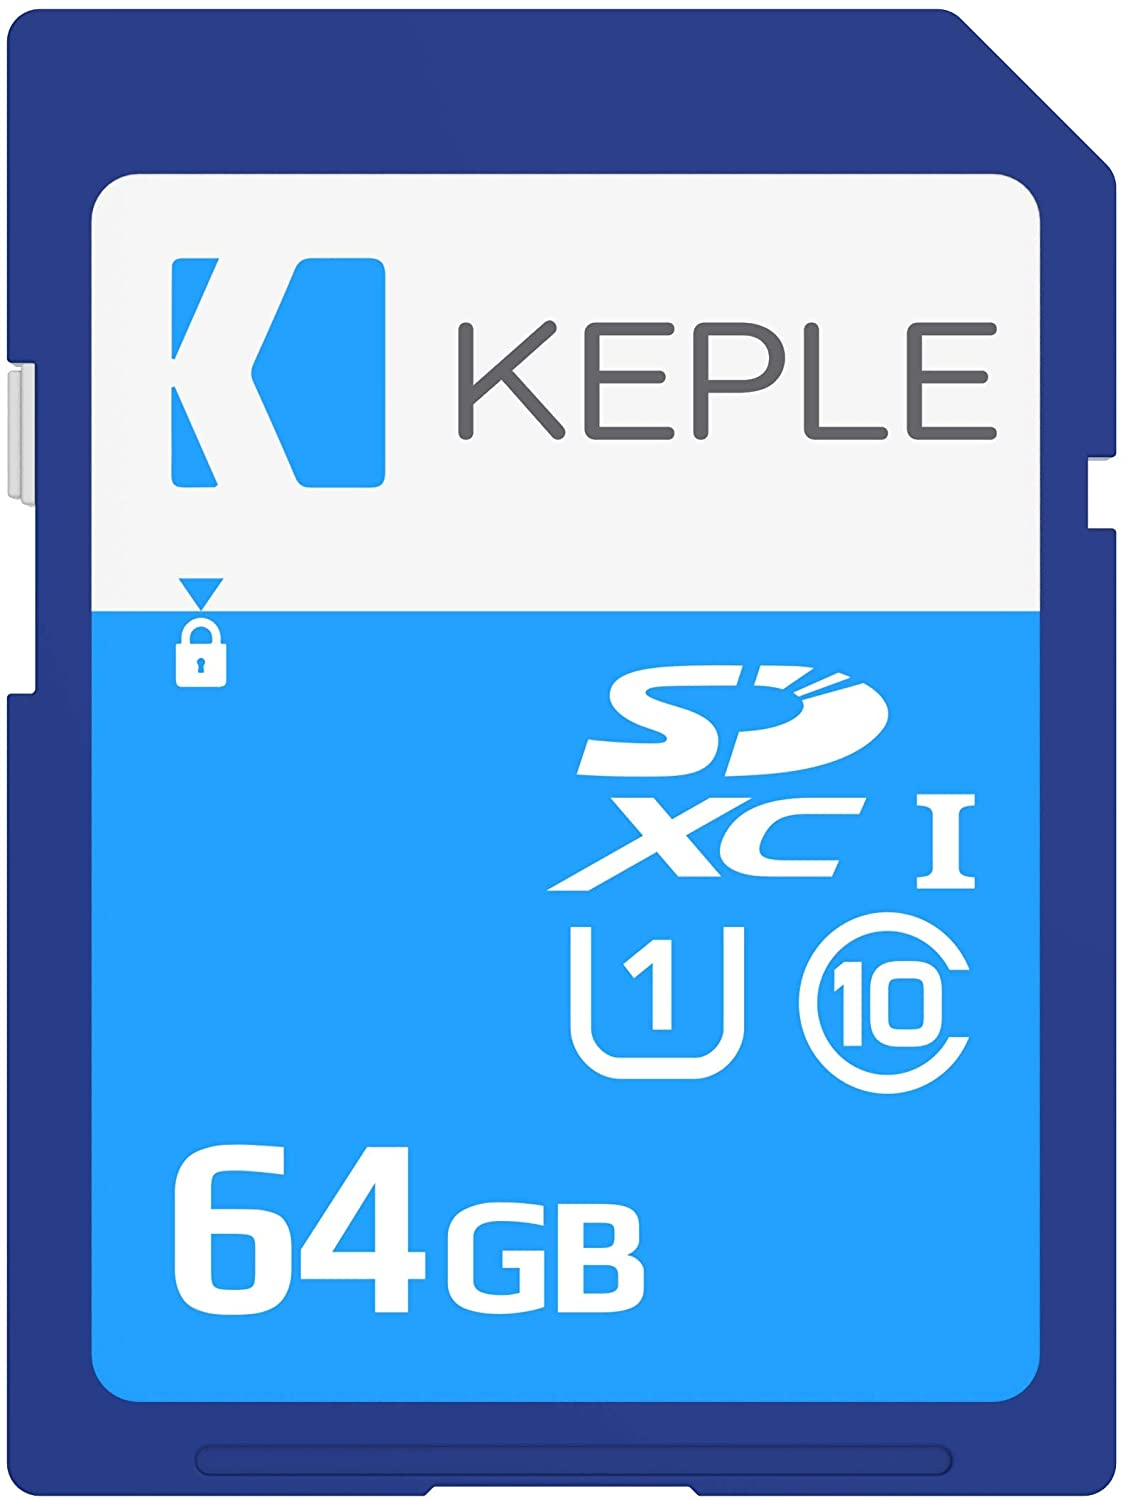 64GB SD Memory Card | SD Card Compatible with Casio Exilim EX-ZR15, EX-ZS12, EX-ZS6, EX- ZS20, EX-ZS150, EX-ZR300, EX-ZR1000, EX-ZR400, EX-ZR700, EX-ZR800, EX-10 DSLR Camera | 64 GB